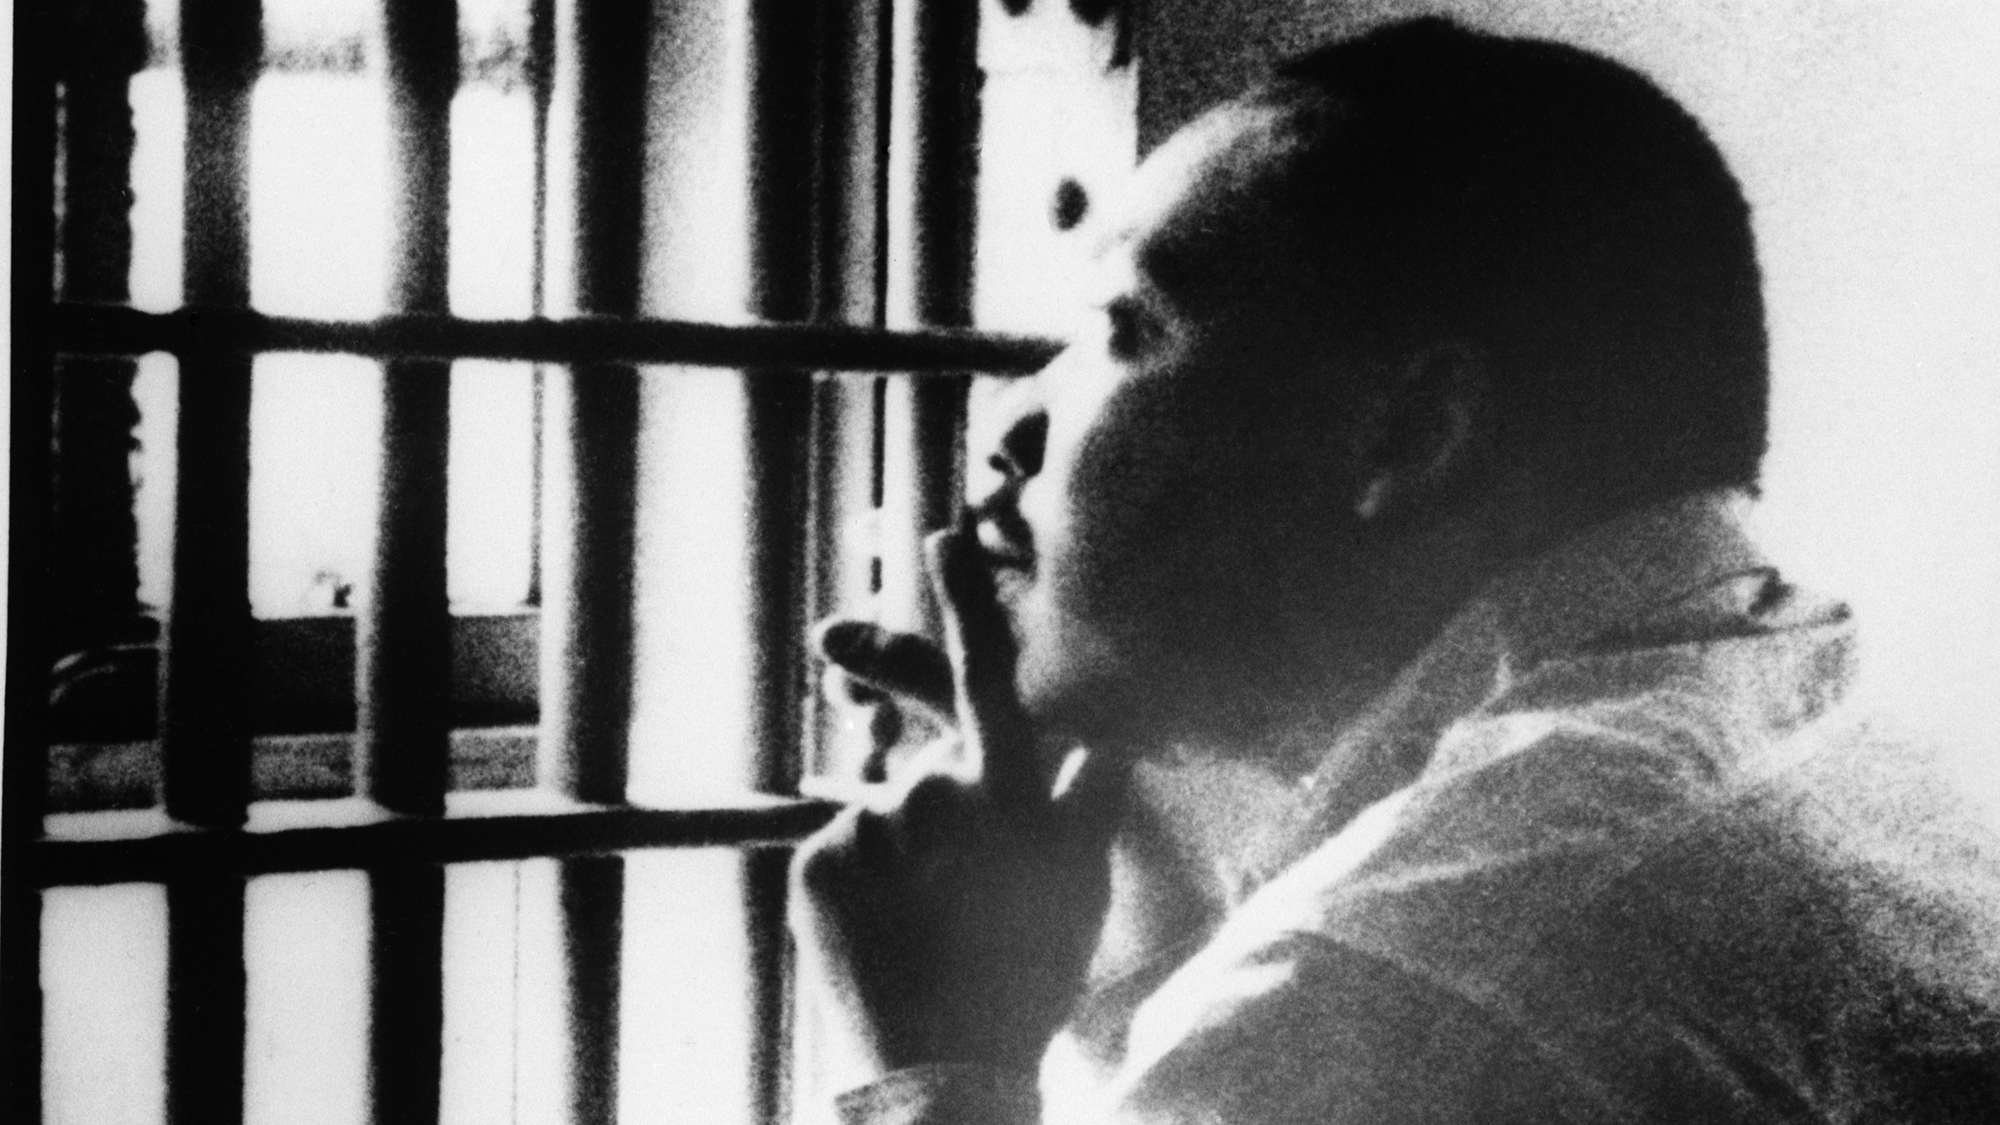 King's 'Letter from Birmingham Jail' explains the rage over the NFL anthem protests and the persistence of racial injustice